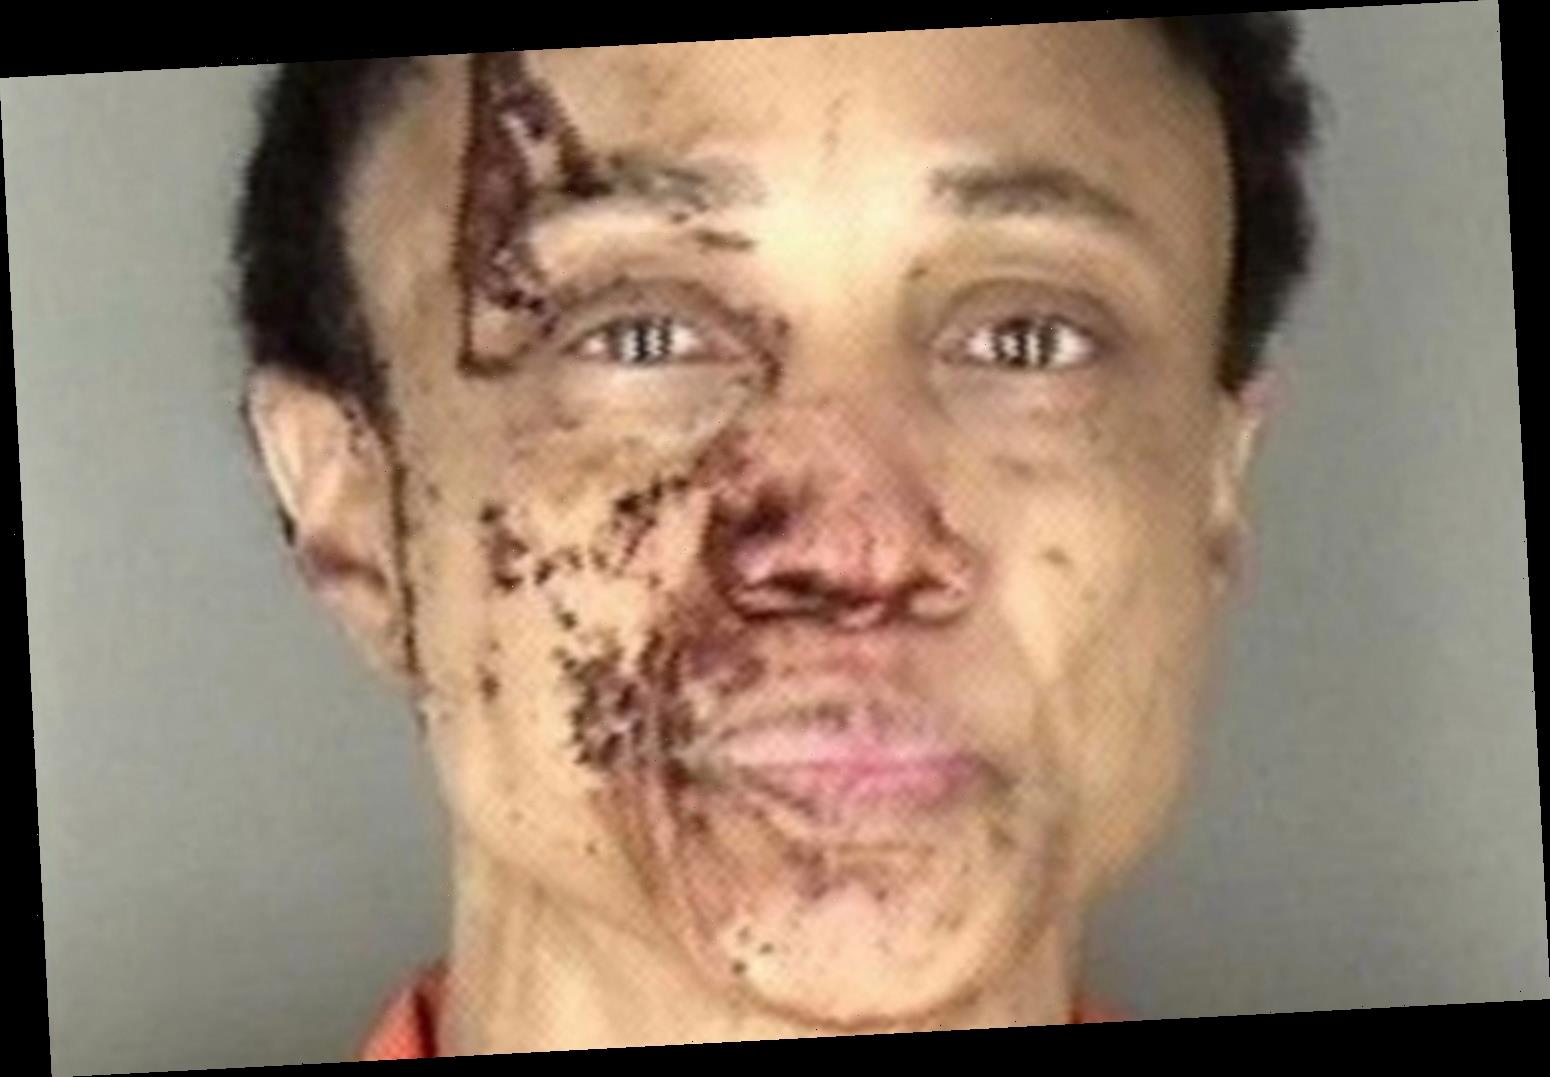 Shock mugshot shows woman covered in blood after 'killing dad, 73, and leaving trail of blood'